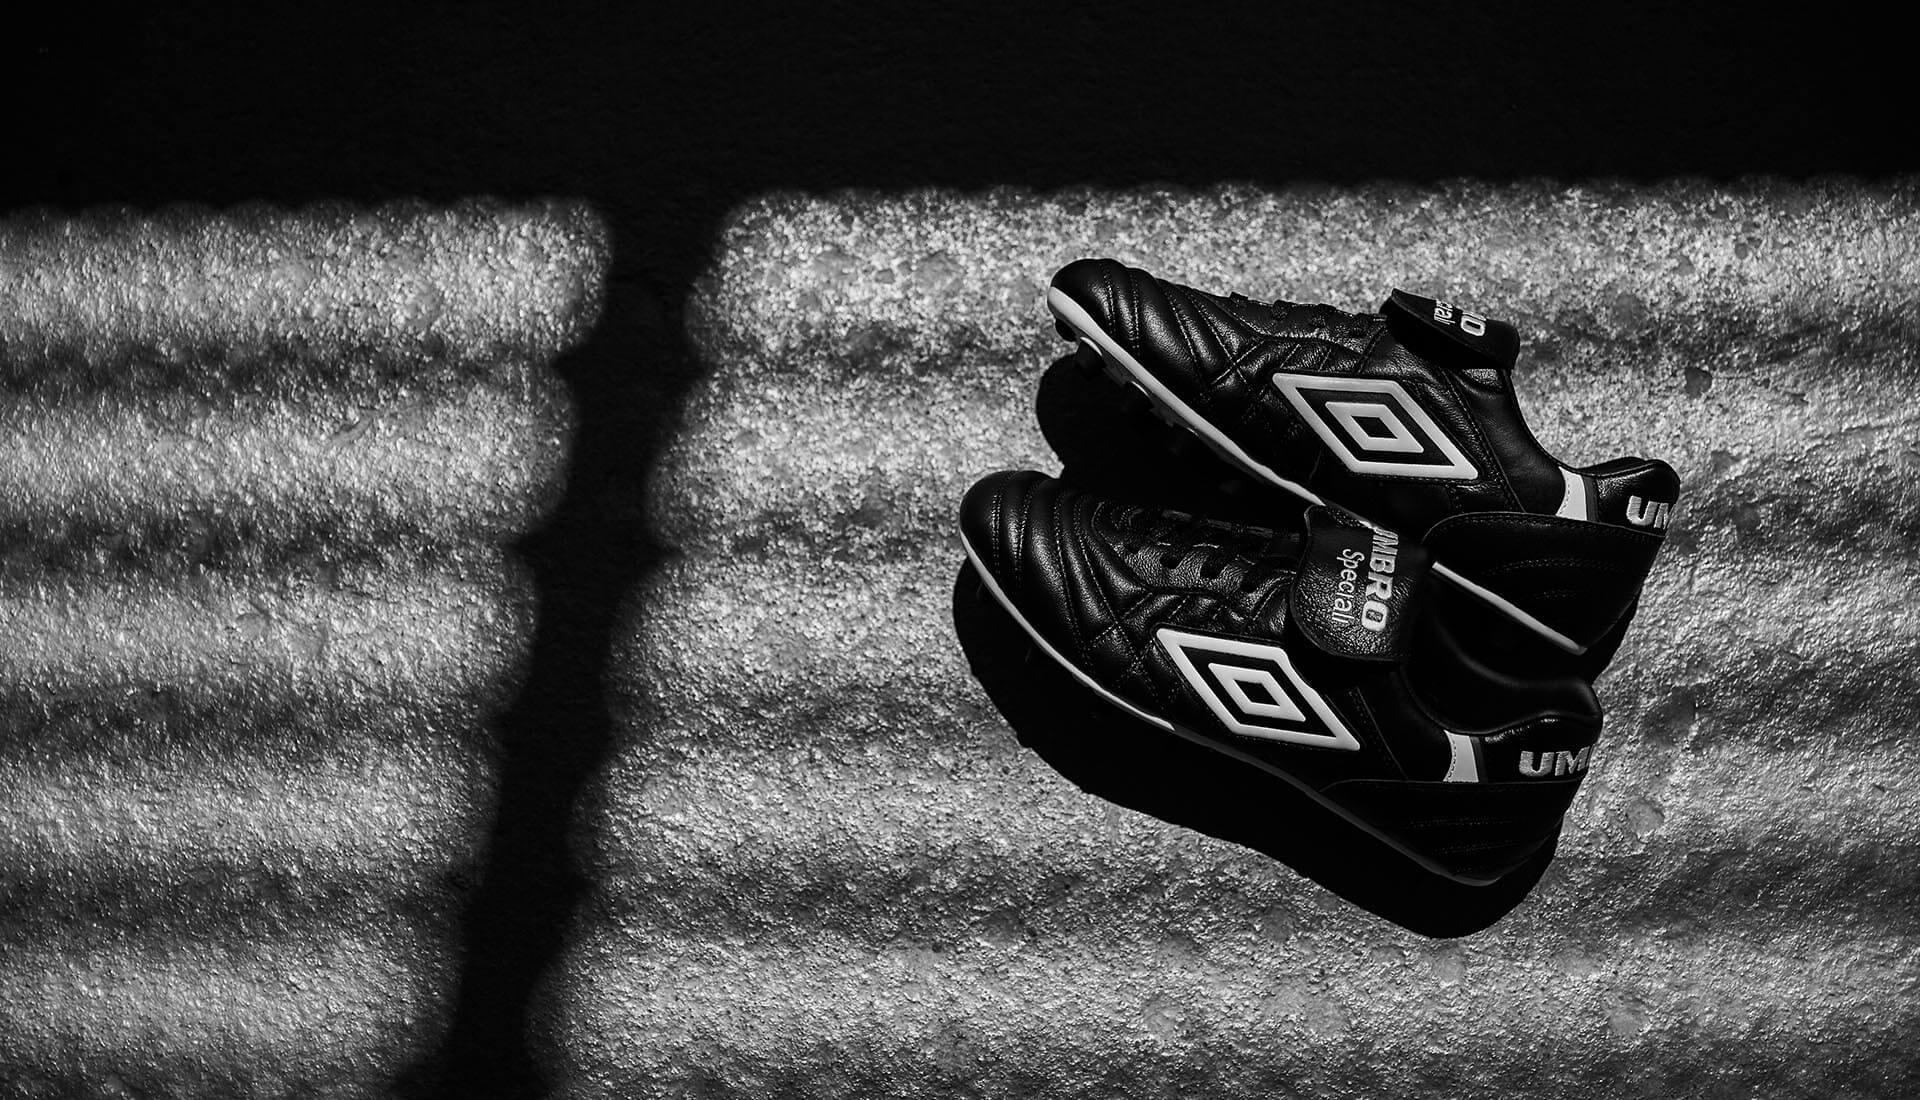 bf71f5f10836d8 Umbro Turn the Clocks Back With the Release of the Speciali 98 - SoccerBible .